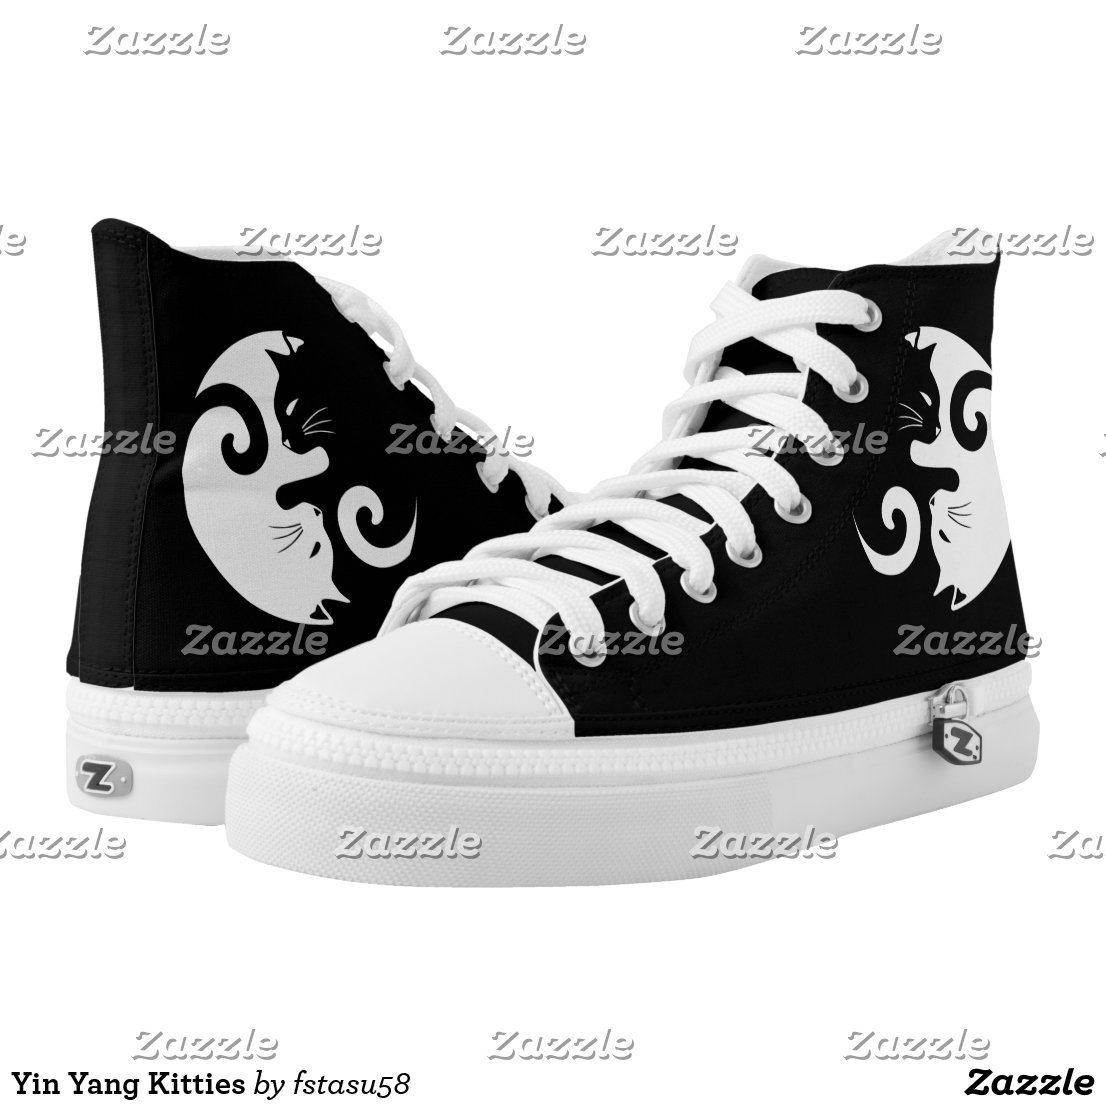 Yin Yang Kitties High-Top Sneakers